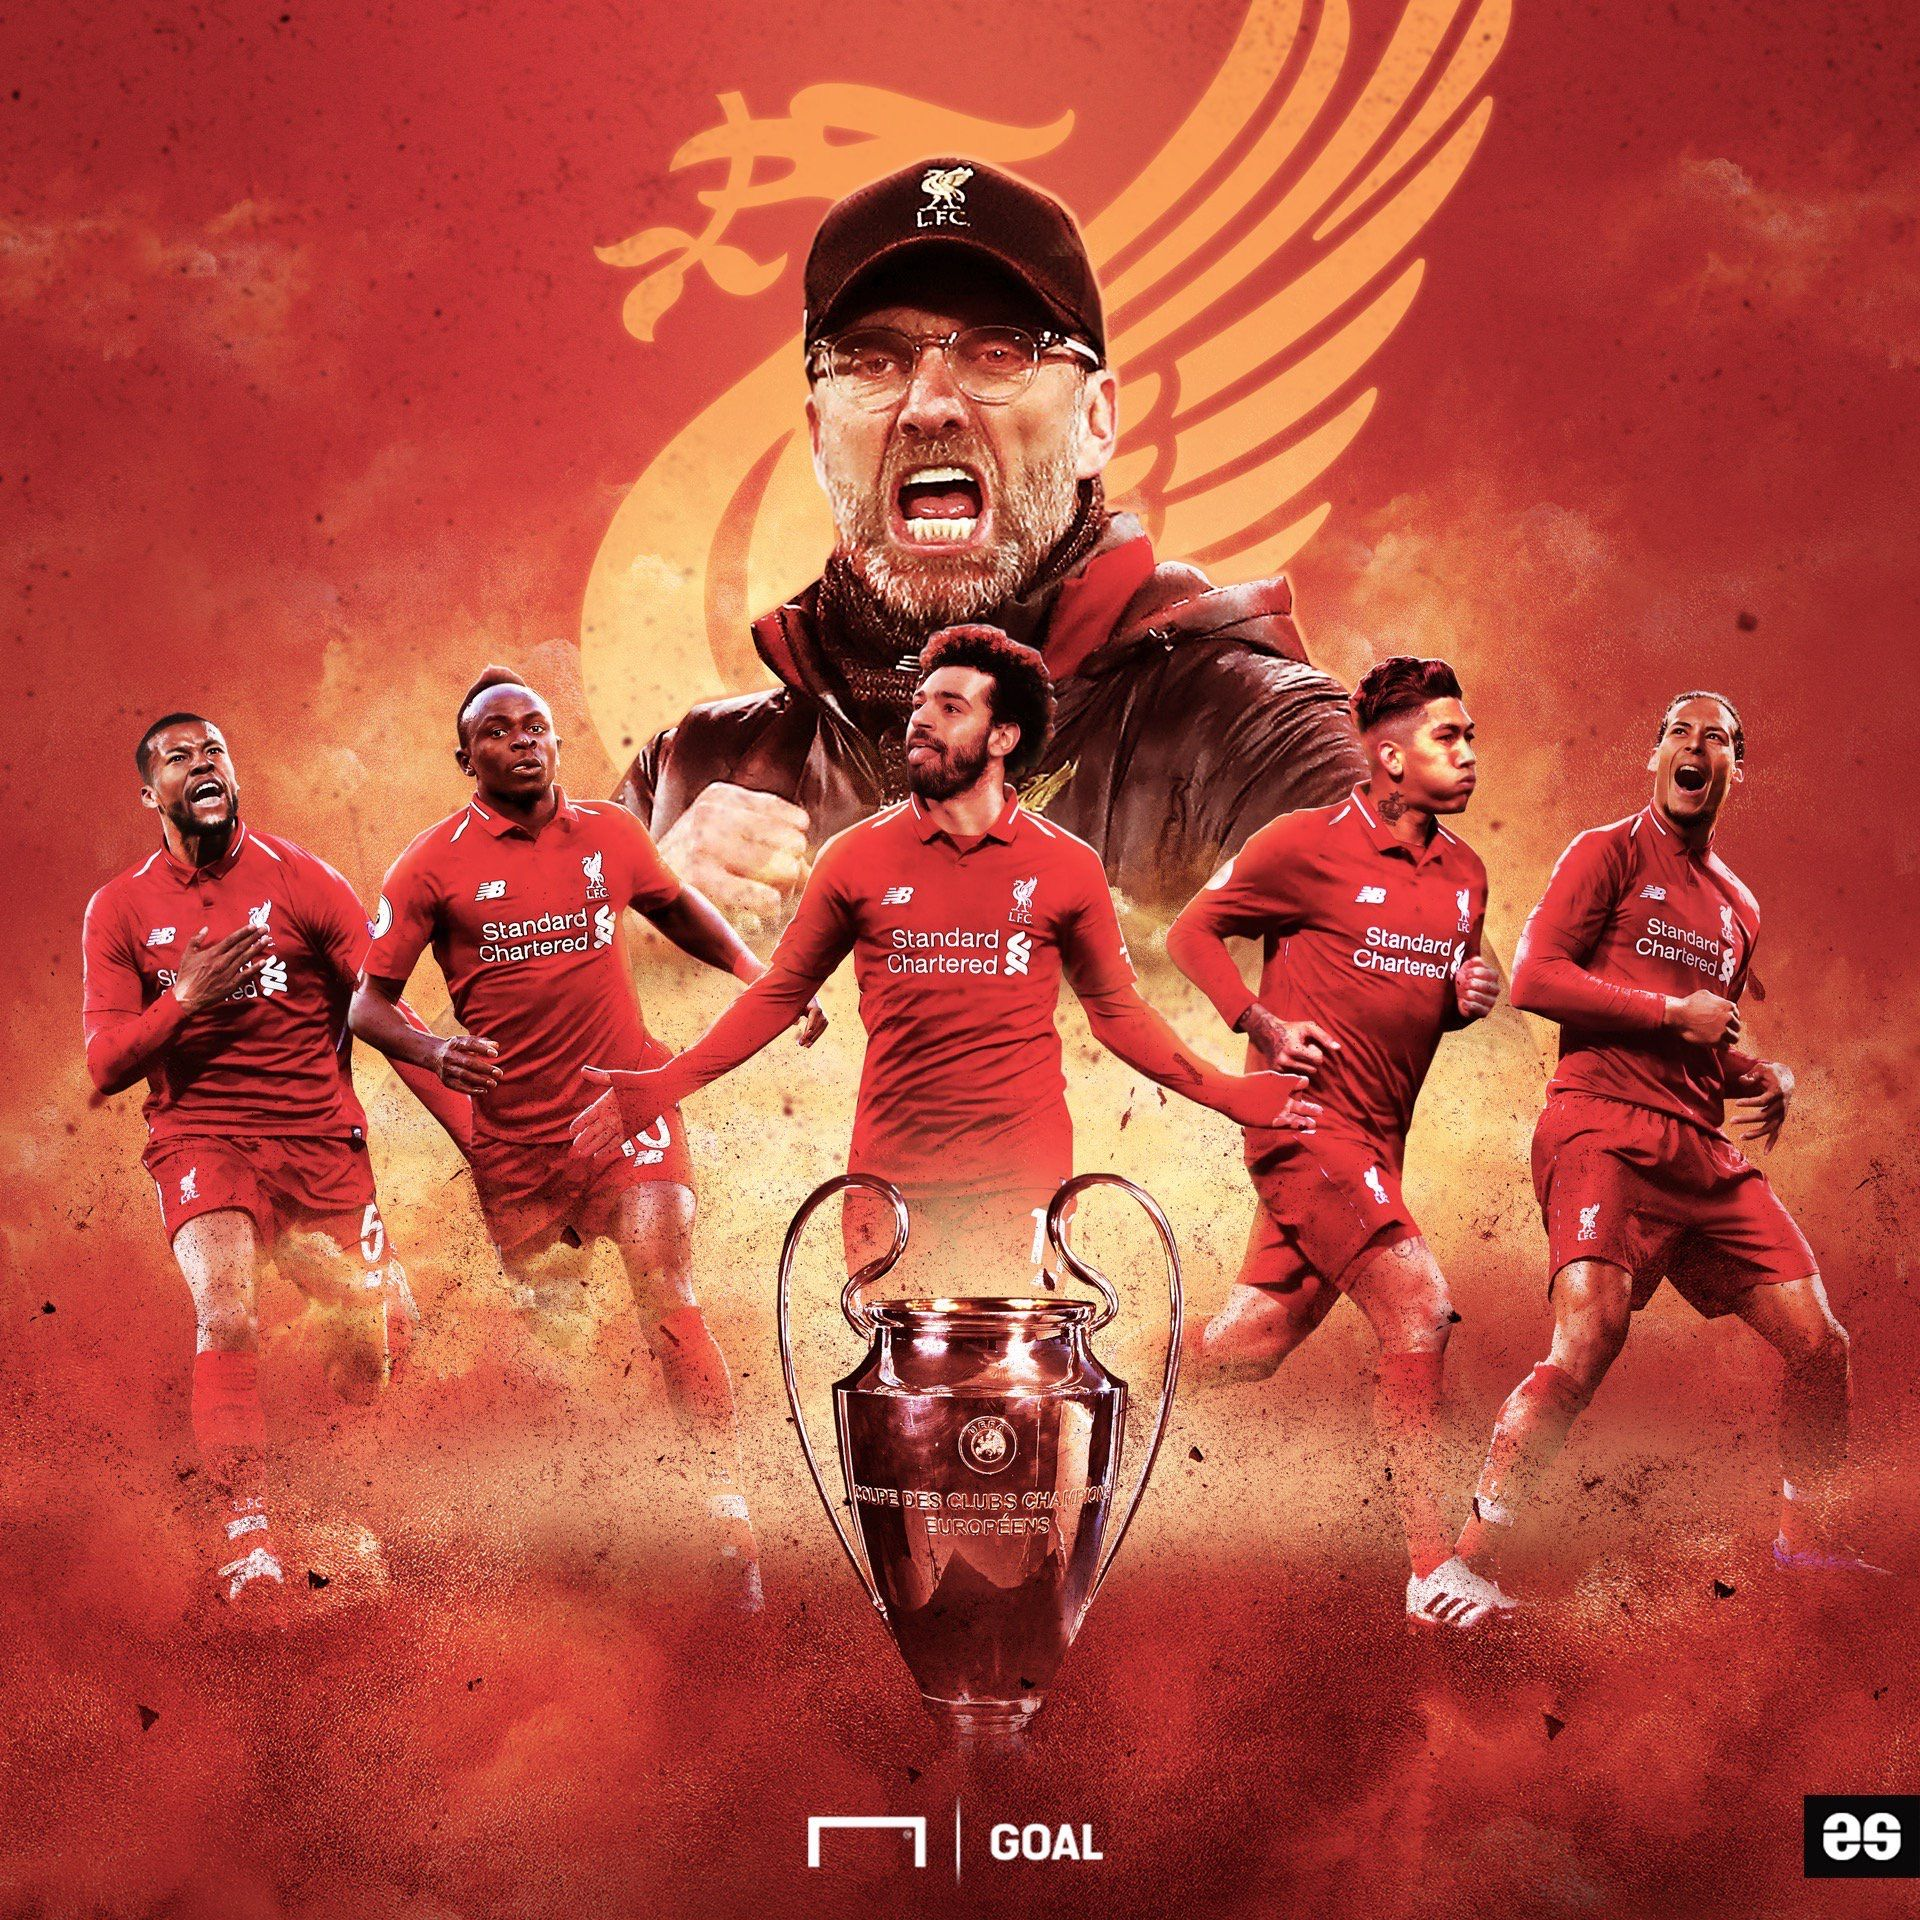 Liverpool Uefa Champions League Winner 2019 Liverpool Champions Liverpool Uefa Champions League Liverpool Football Club Wallpapers